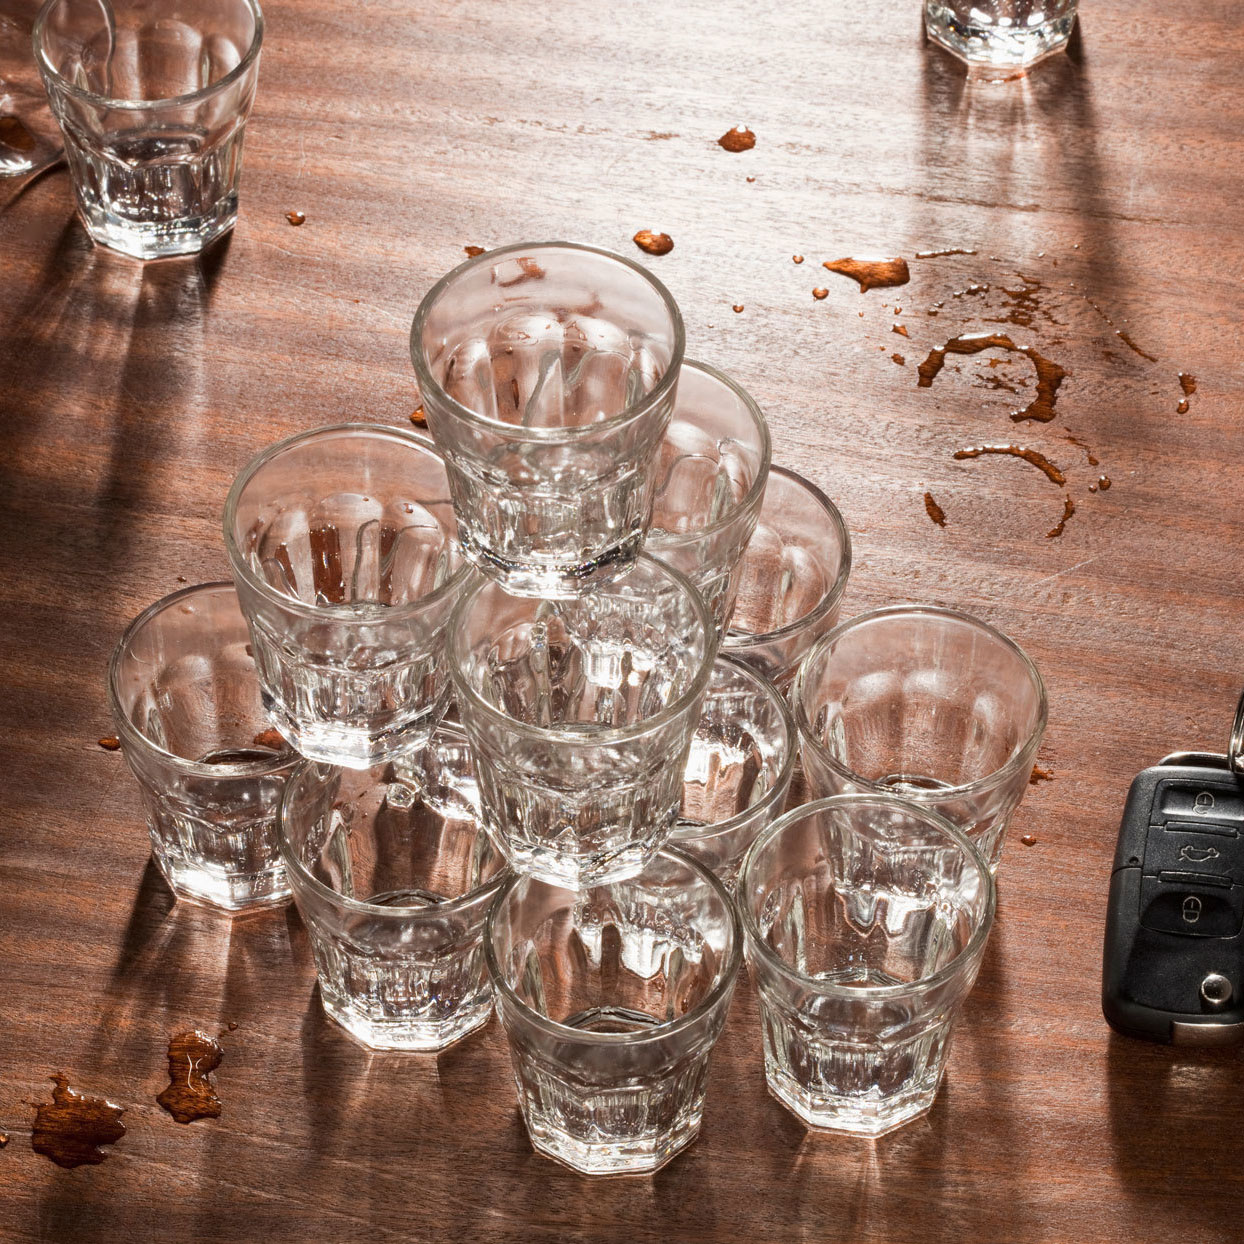 several shot glasses all piled on top of each other